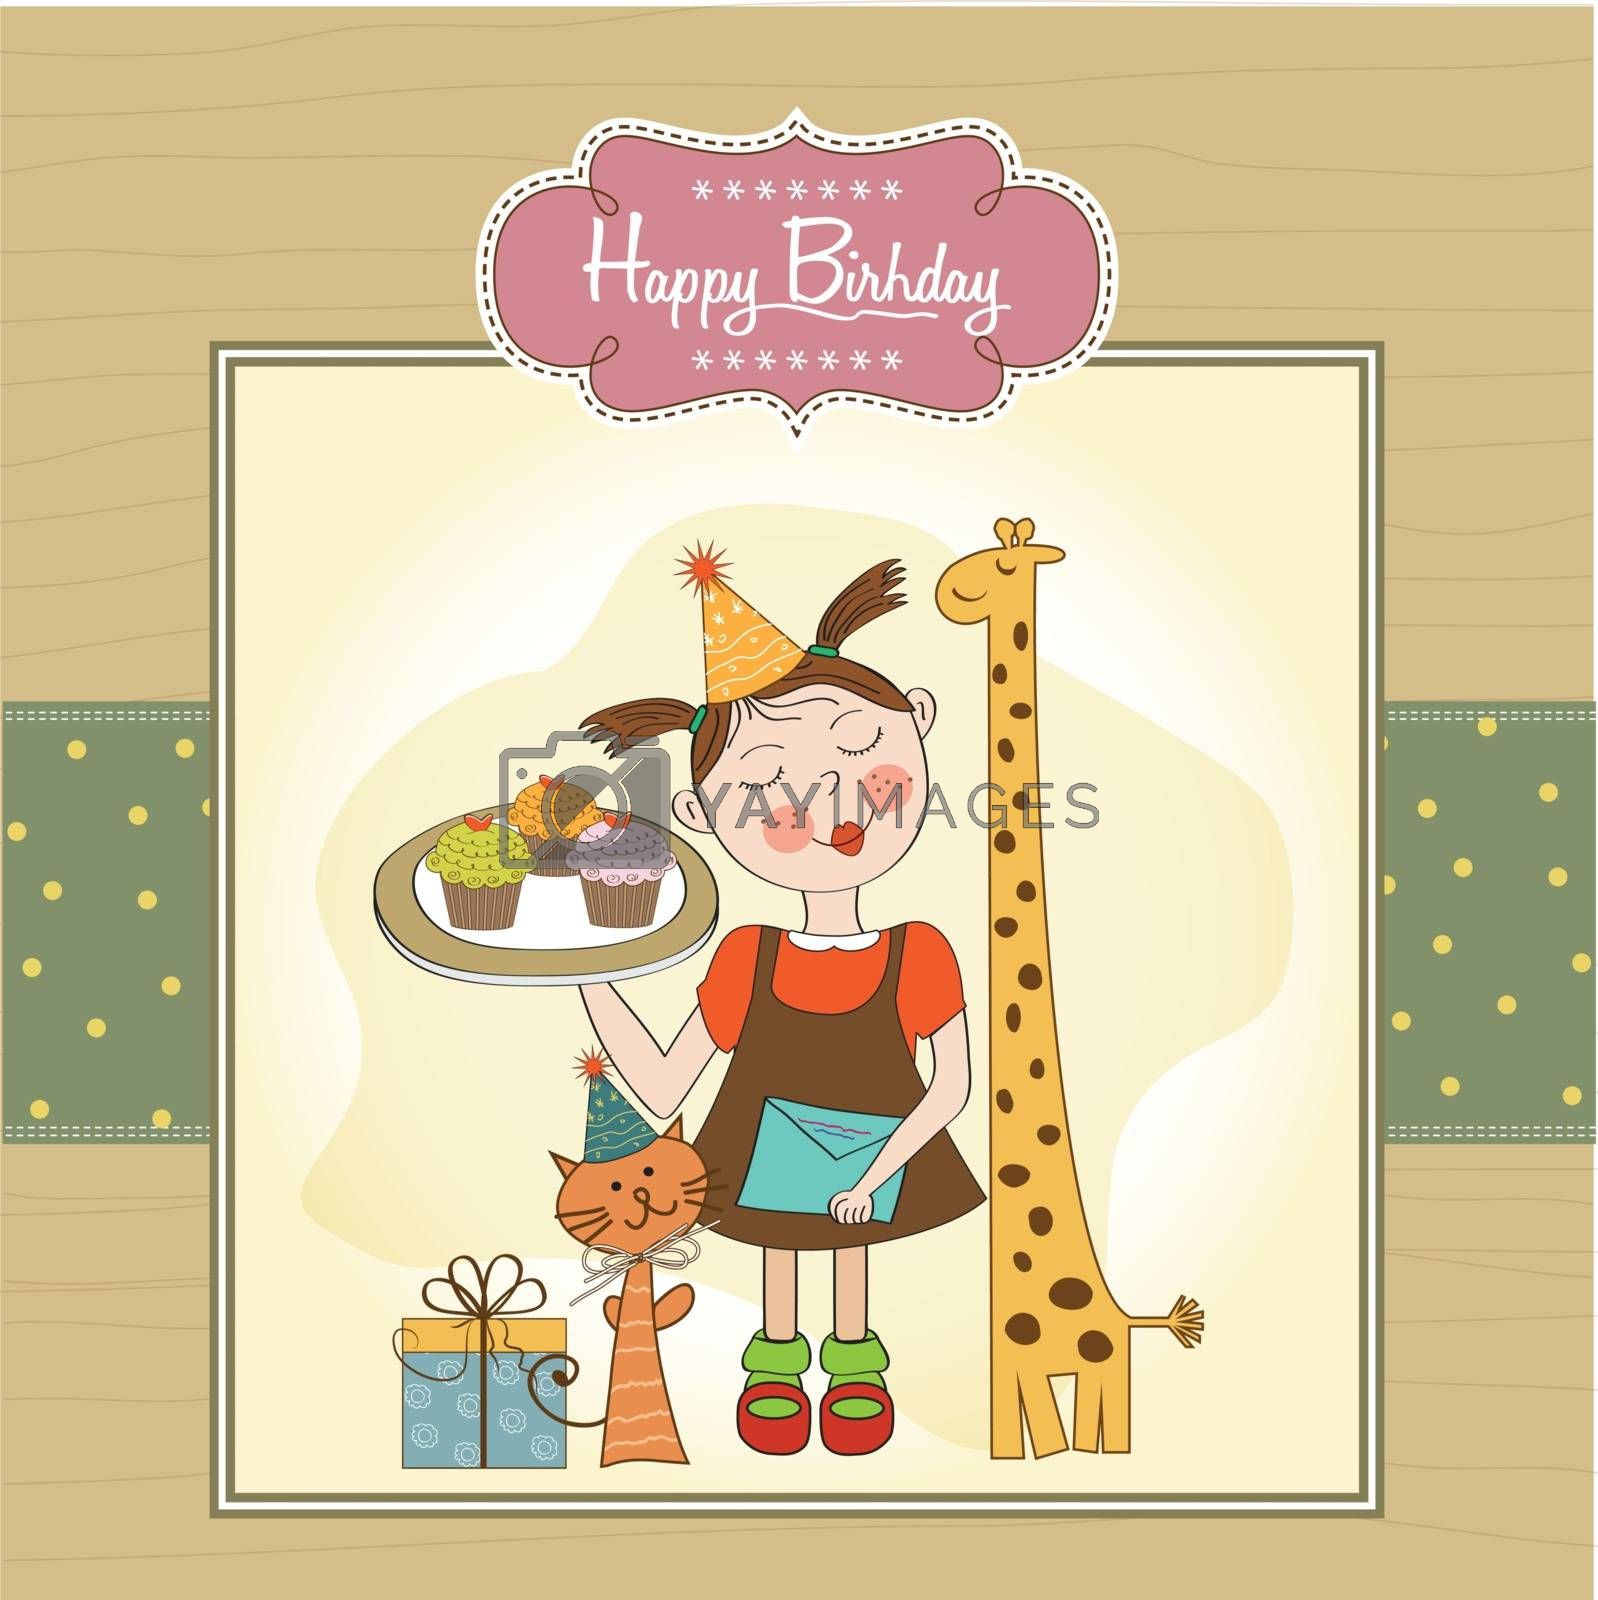 Happy Birthday card with funny girl, animals and cupcakes by balasoiu